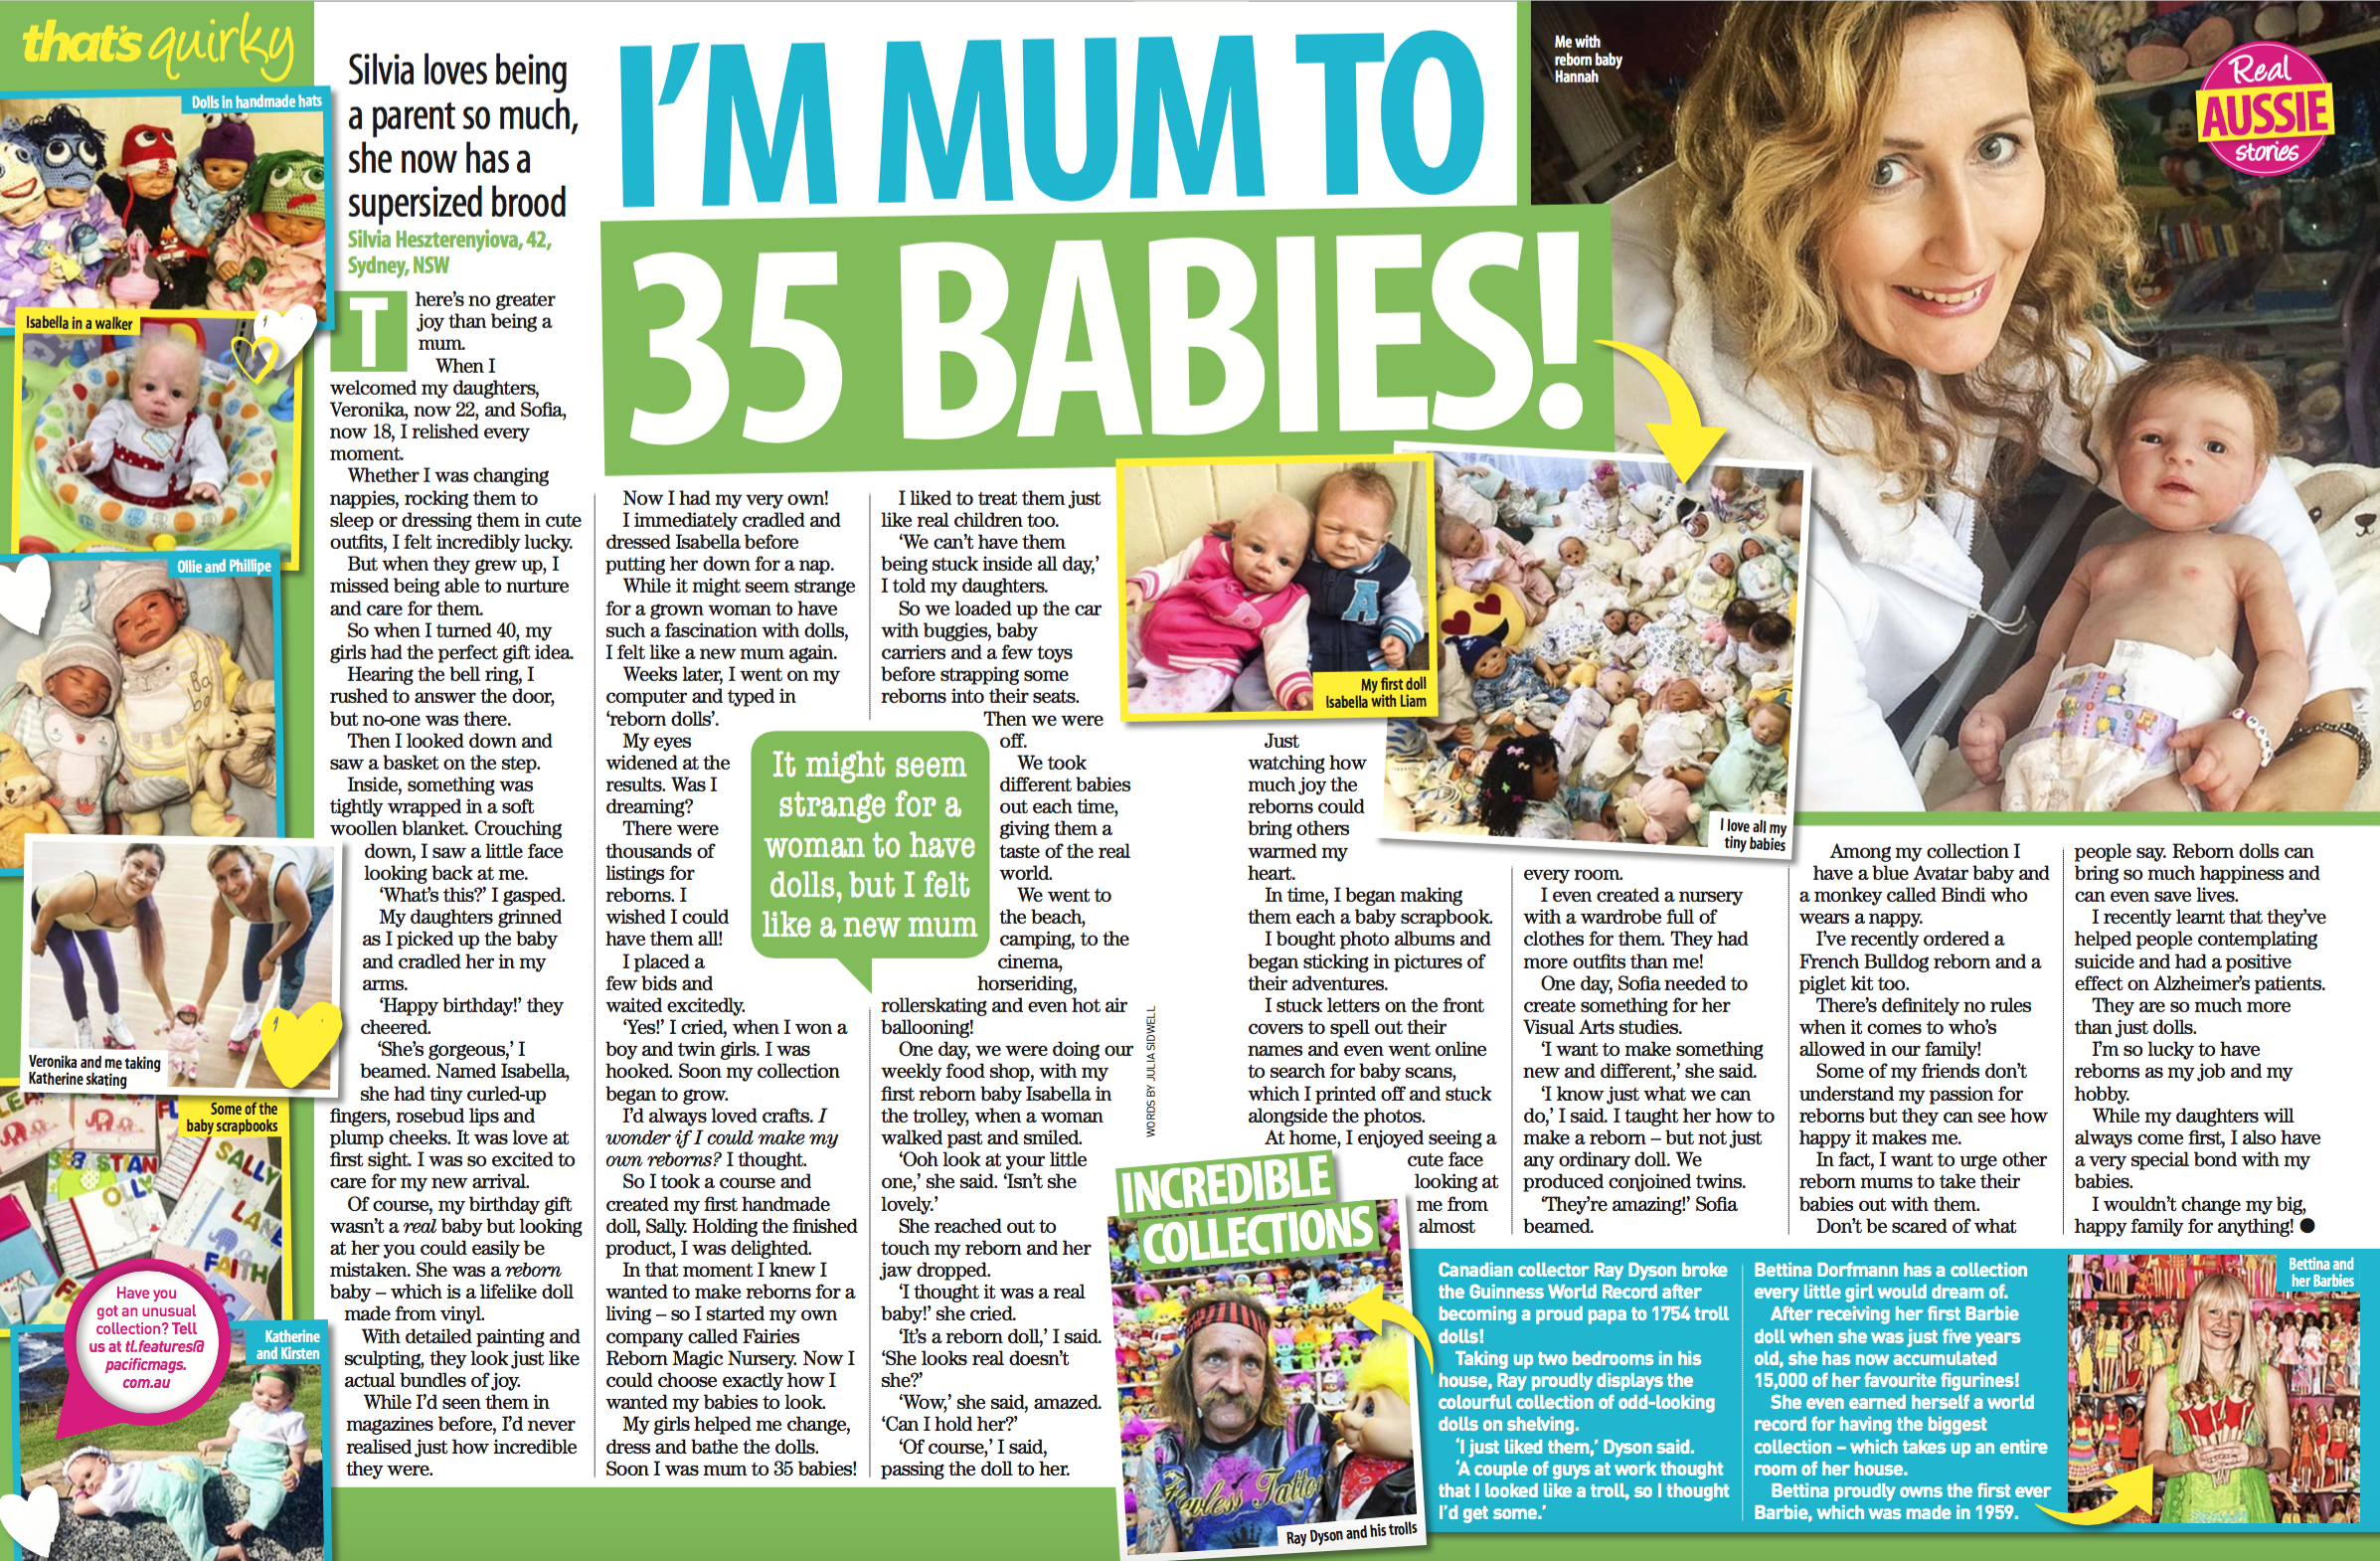 That's Life: Mum to 35 BABIES!